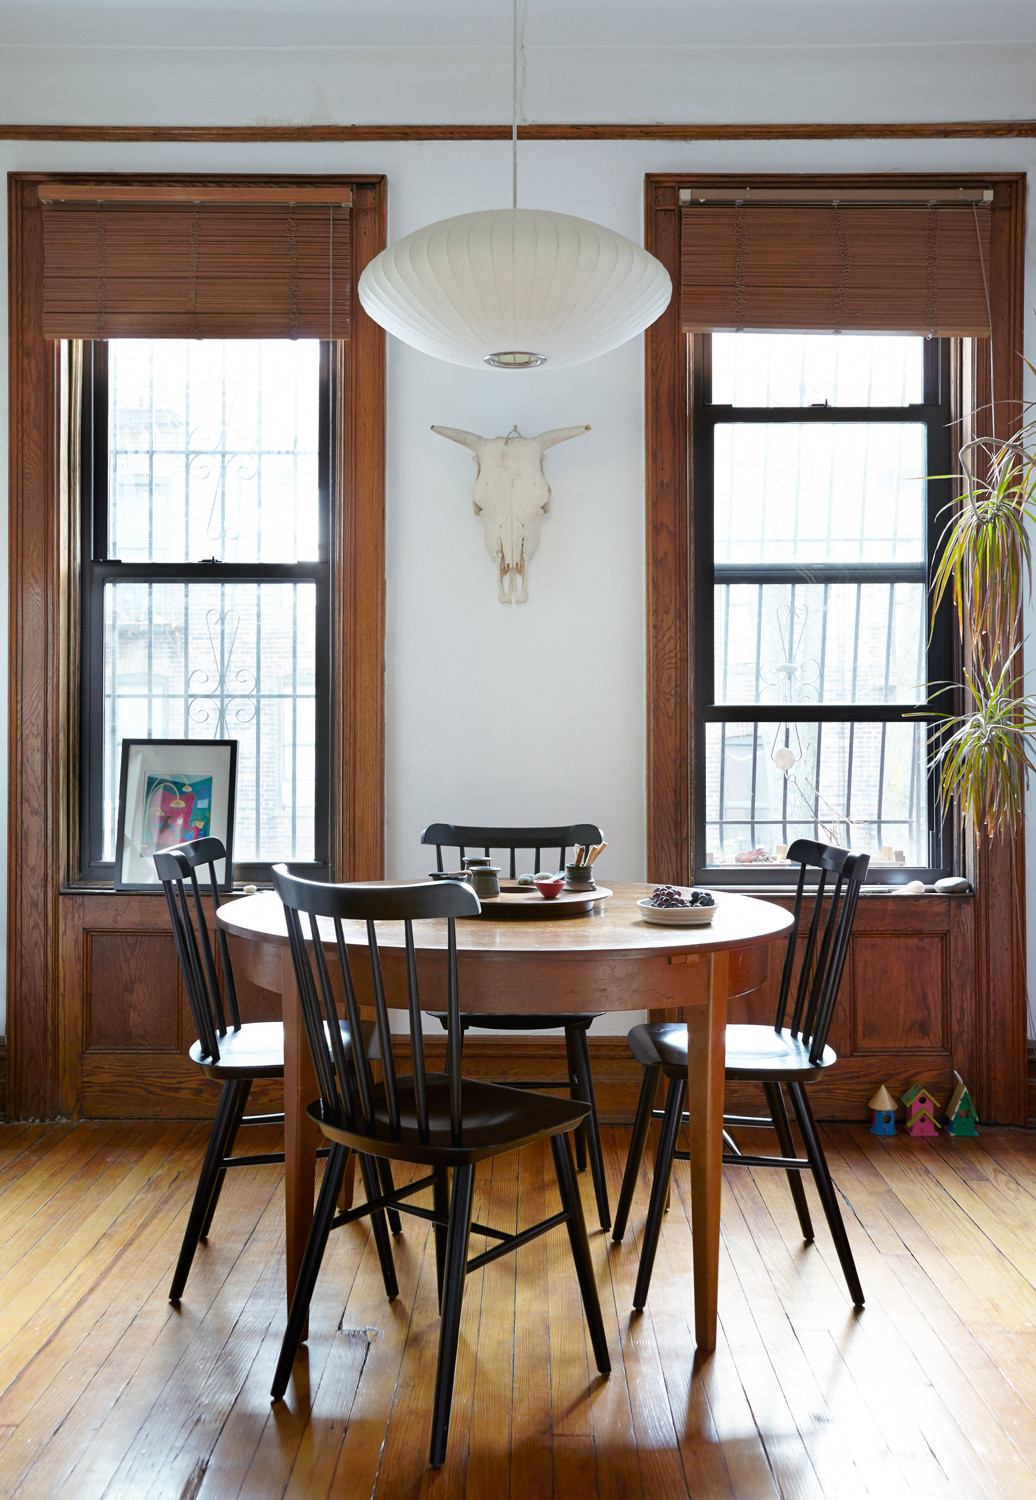 Veith Krienke's midcentury table is paired with chairs and a Nelson pendant from Design Within Reach.